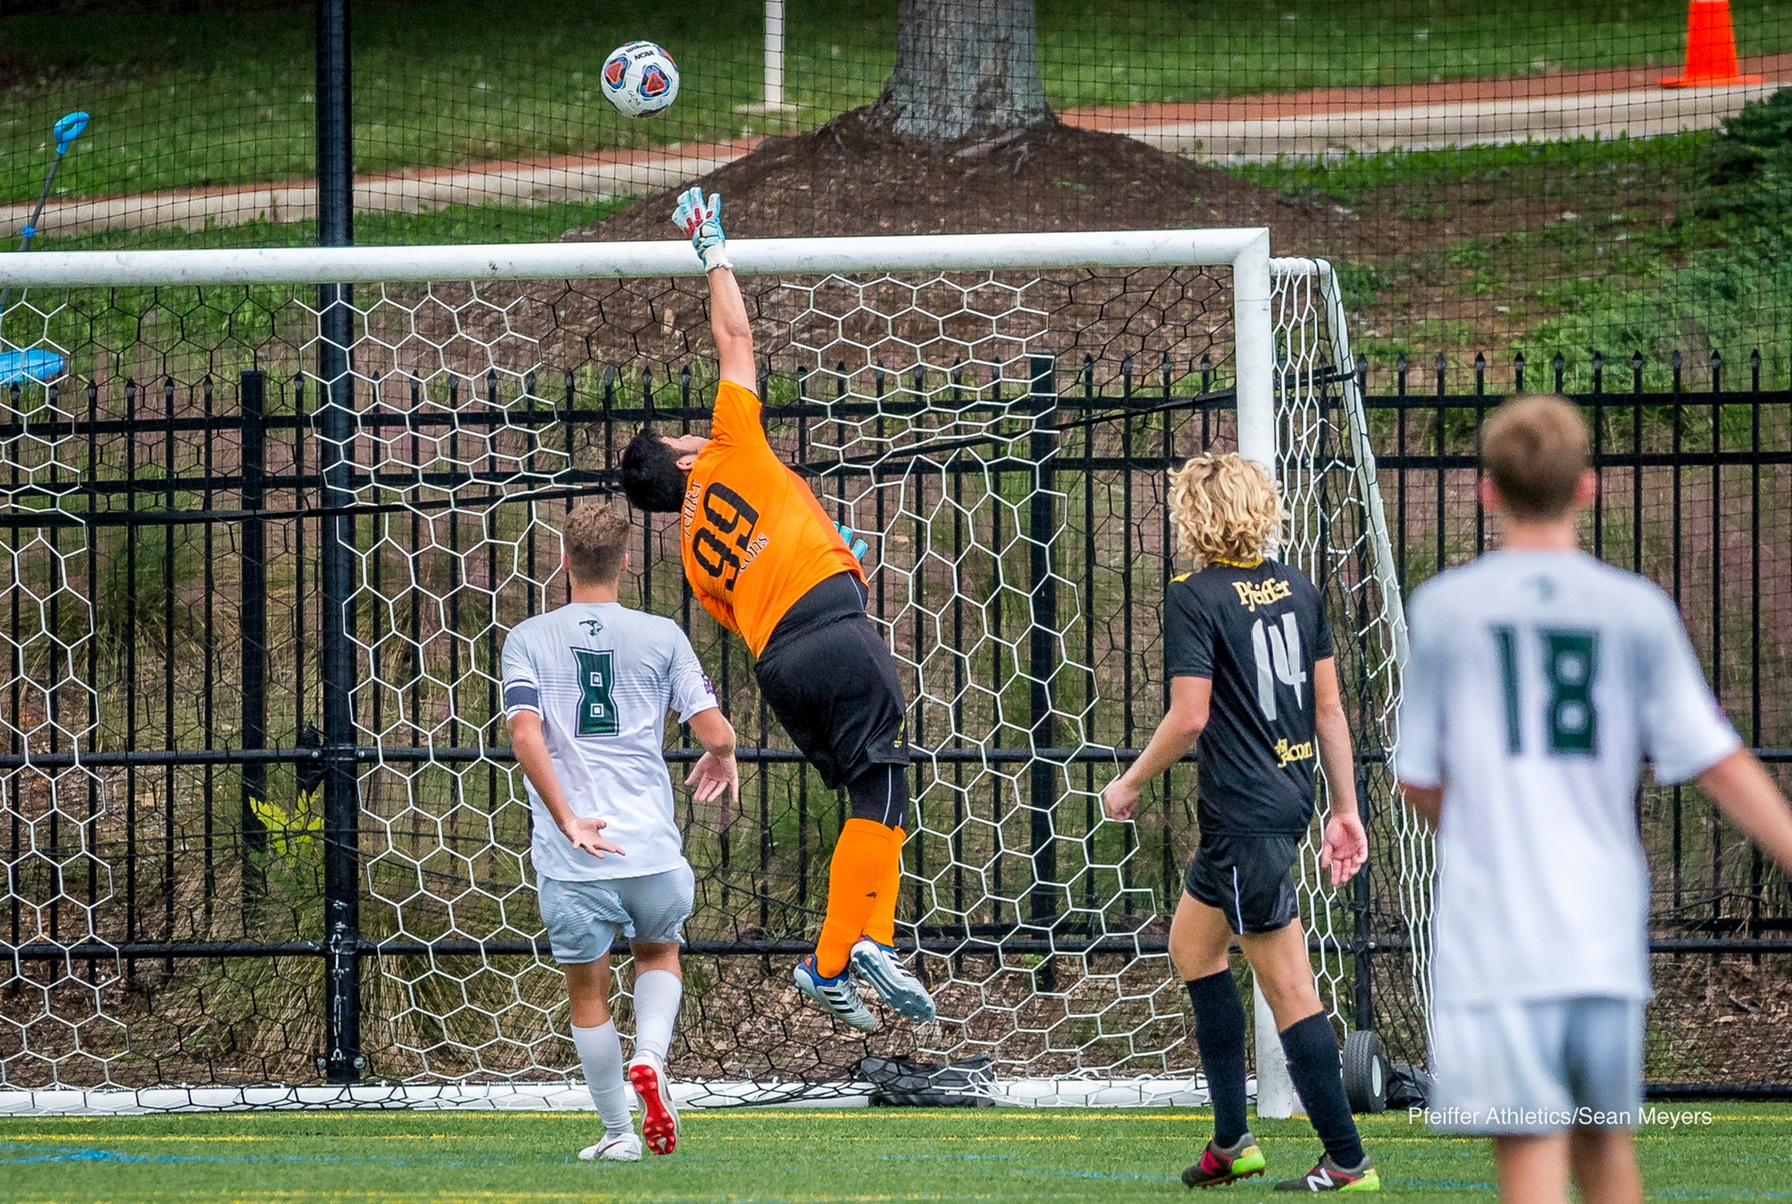 Covenant Converts Penalty Kick to Drop Pfeiffer Men's Soccer, 1-0